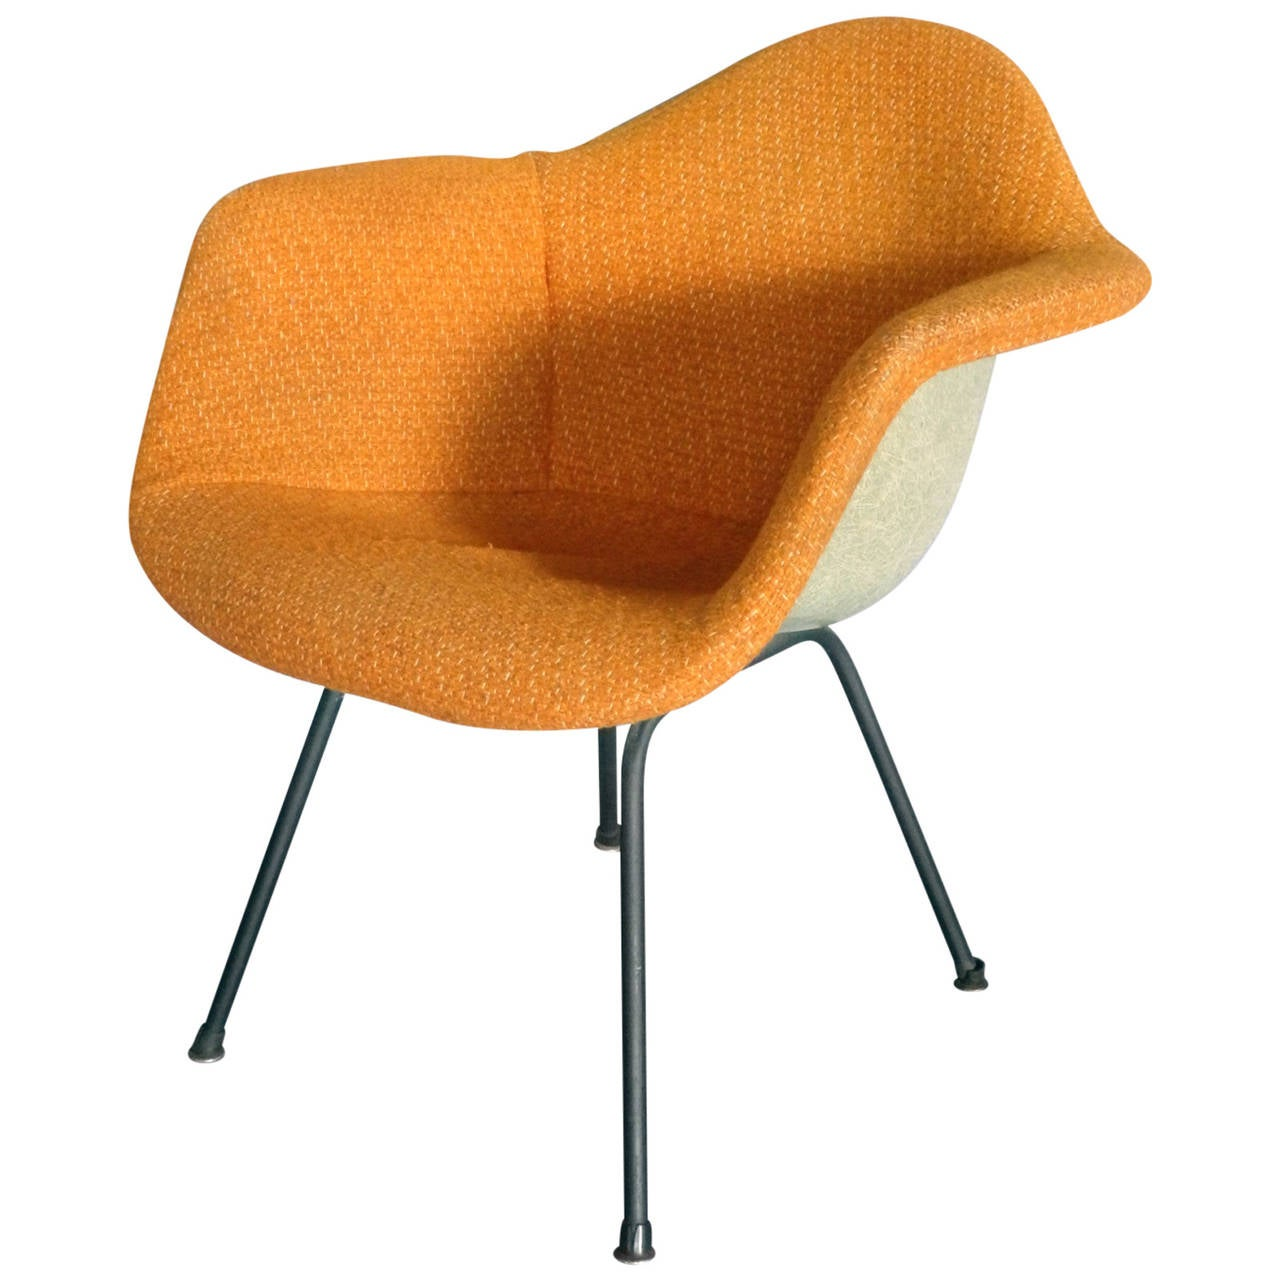 Transitional Eames Upholstered Chair For Sale at 1stdibs